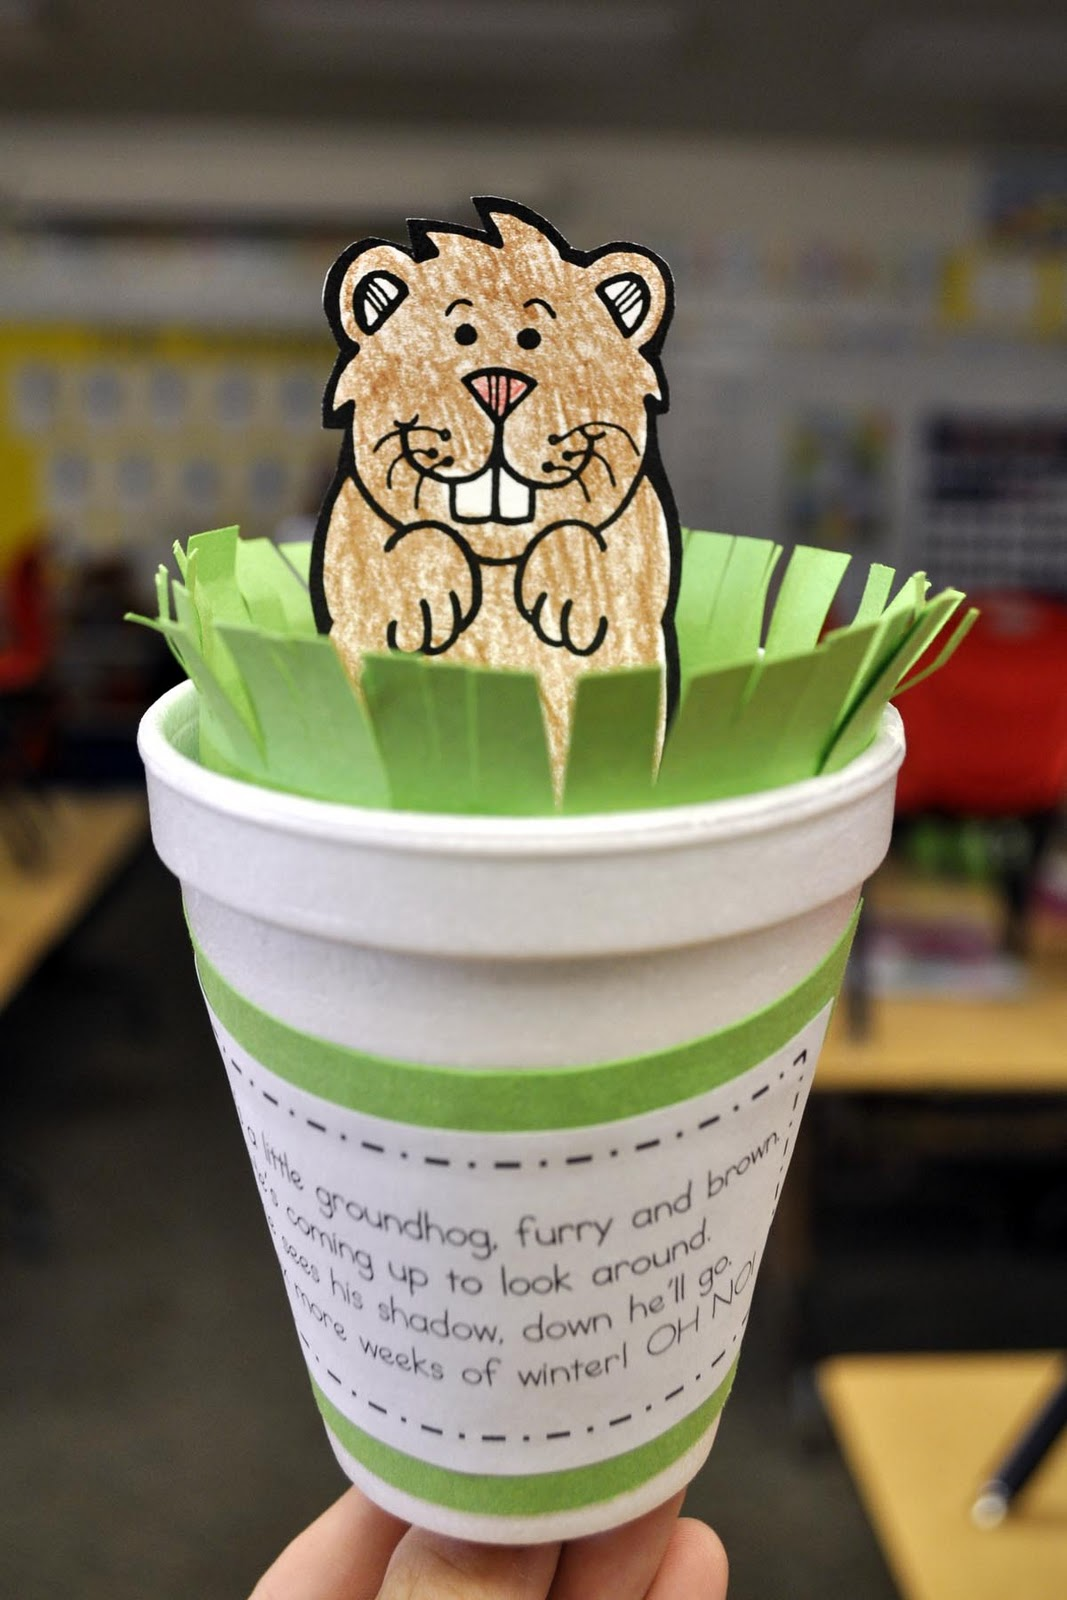 Uncategorized Groundhog Day Stories mrs riccas kindergarten groundhog day we also read this adorable book from growing kinders after the story predicted whether phil saw his shadow year